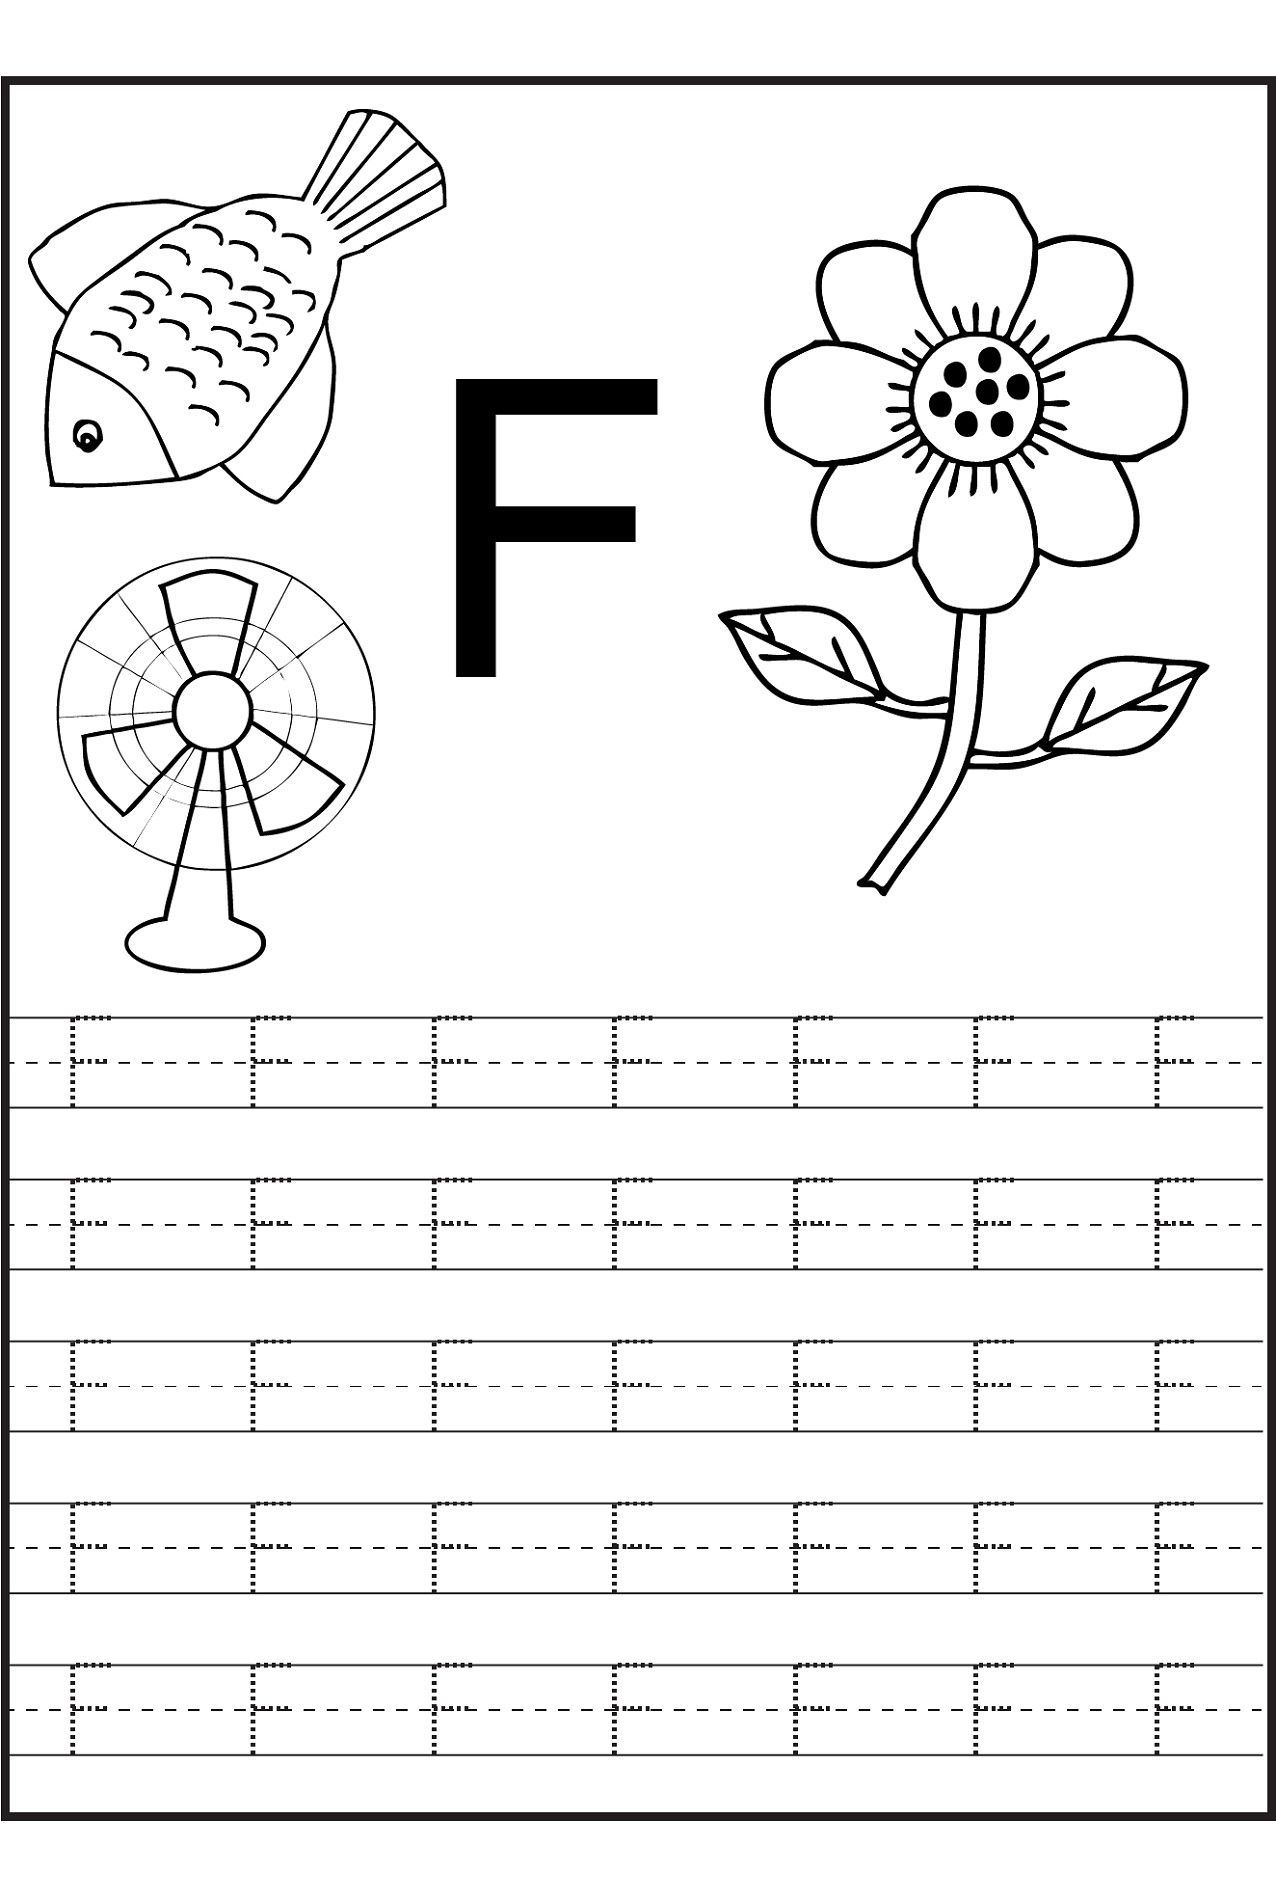 3 Letter Z Writing Practice Worksheet Printable Trace The Letters Worksheets Alphabet Writing Worksheets Letter Tracing Worksheets Writing Worksheets [ 1900 x 1276 Pixel ]